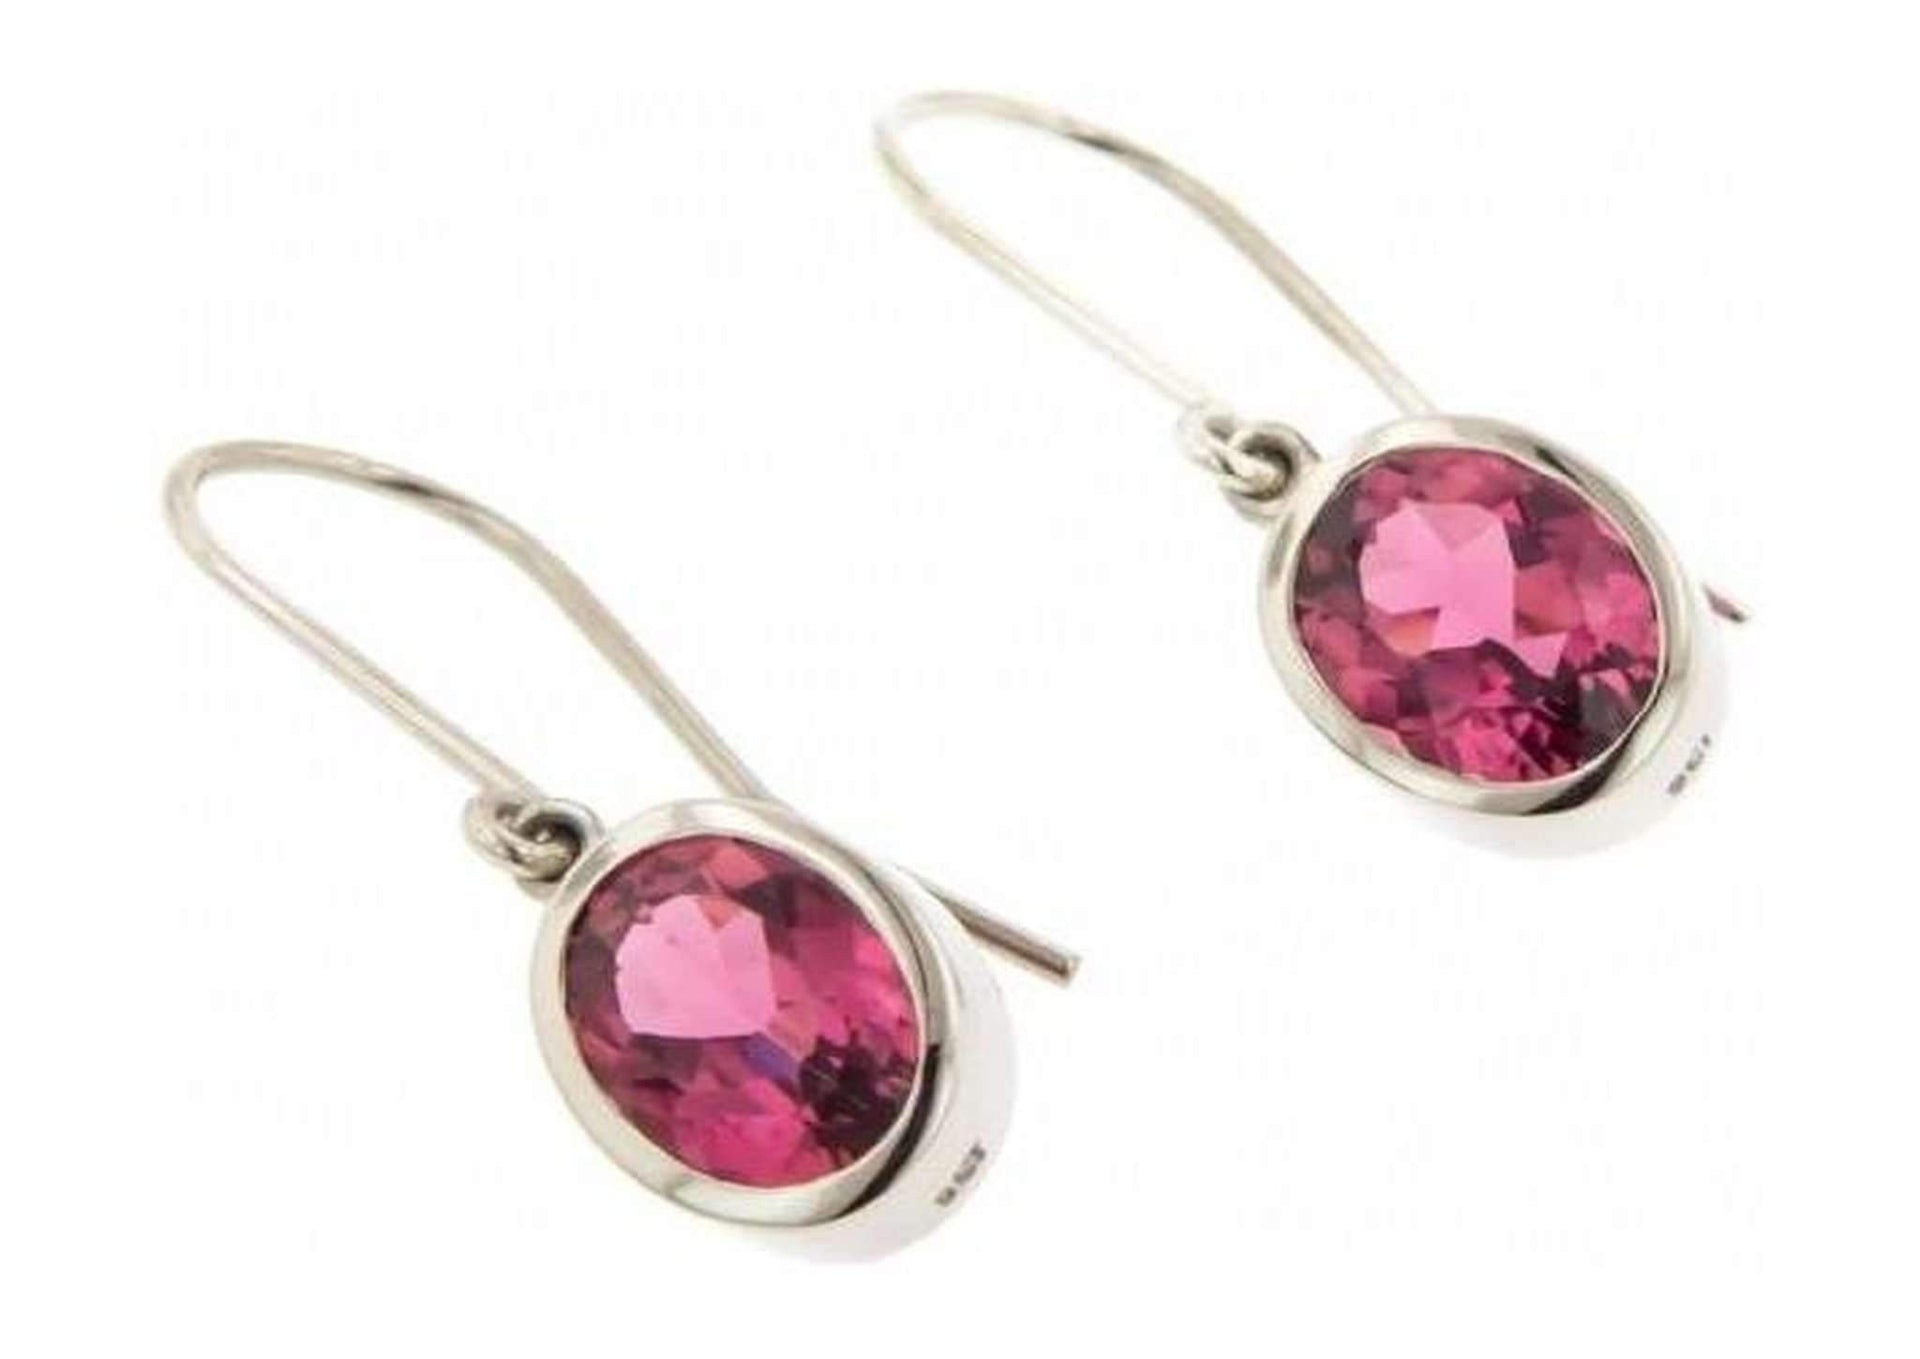 White Gold & Pink Tourmaline Earrings   - Jens Hansen